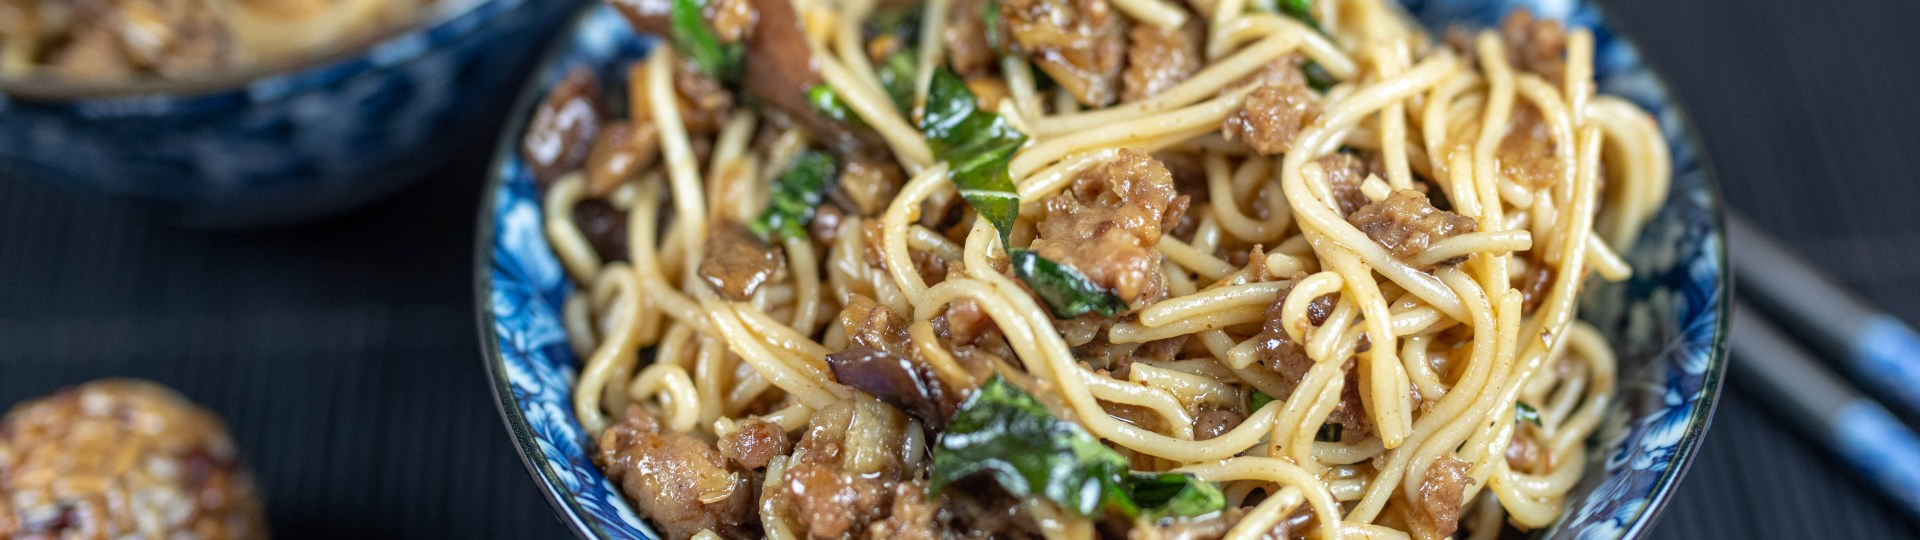 Chinese Cooking at Home: Szechuan Pork with Eggplant and Mushrooms